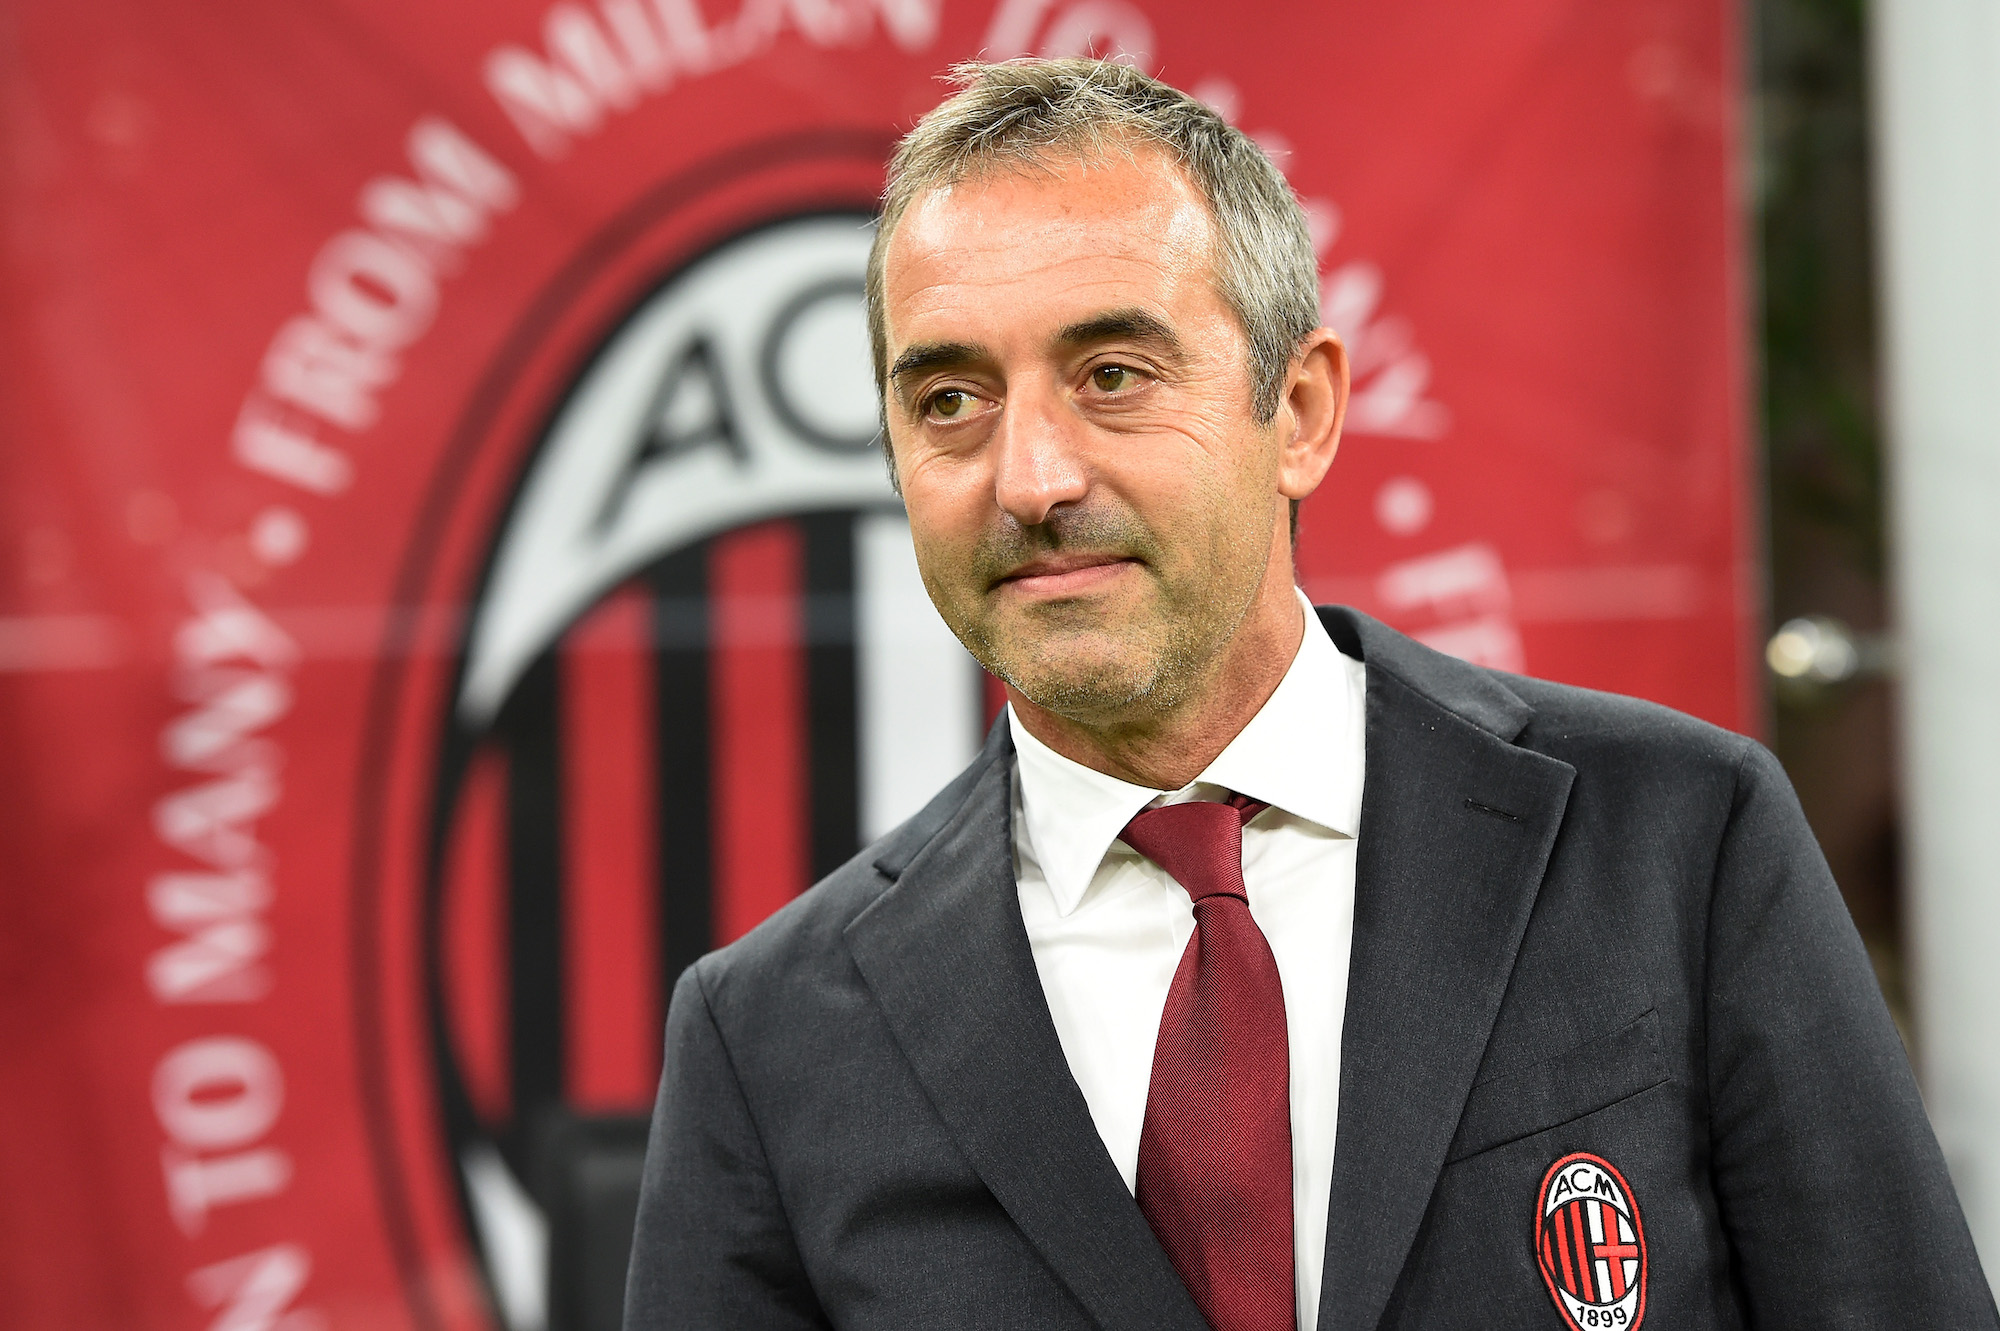 Ml A Timeline Of Giampaolo S Disastrous 111 Day Rein At Milan One Year On From His Hiring